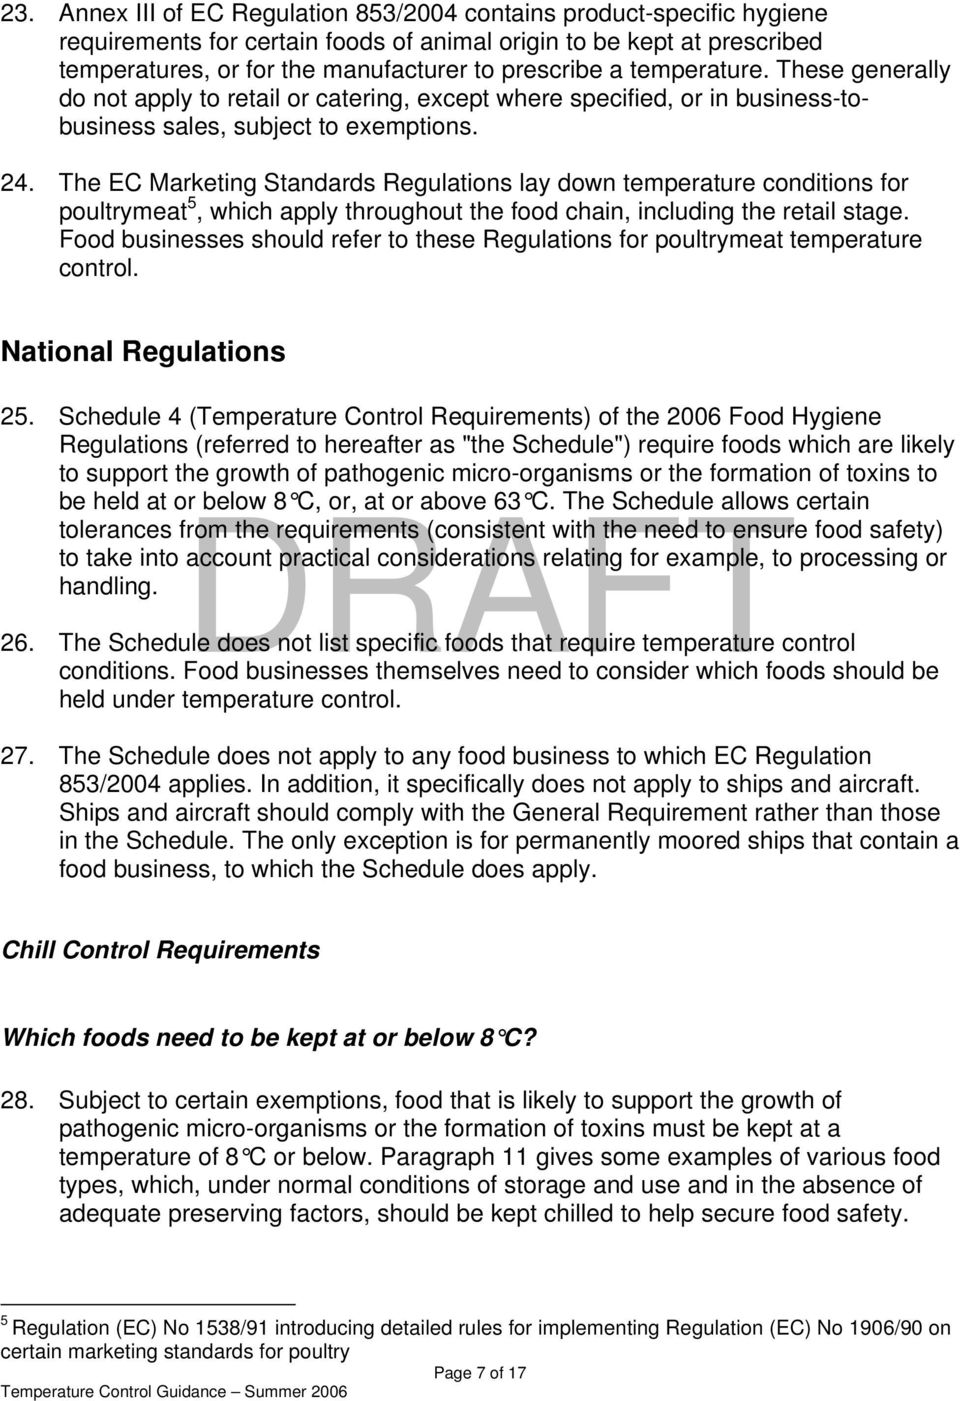 The EC Marketing Standards Regulations lay down temperature conditions for poultrymeat 5, which apply throughout the food chain, including the retail stage.